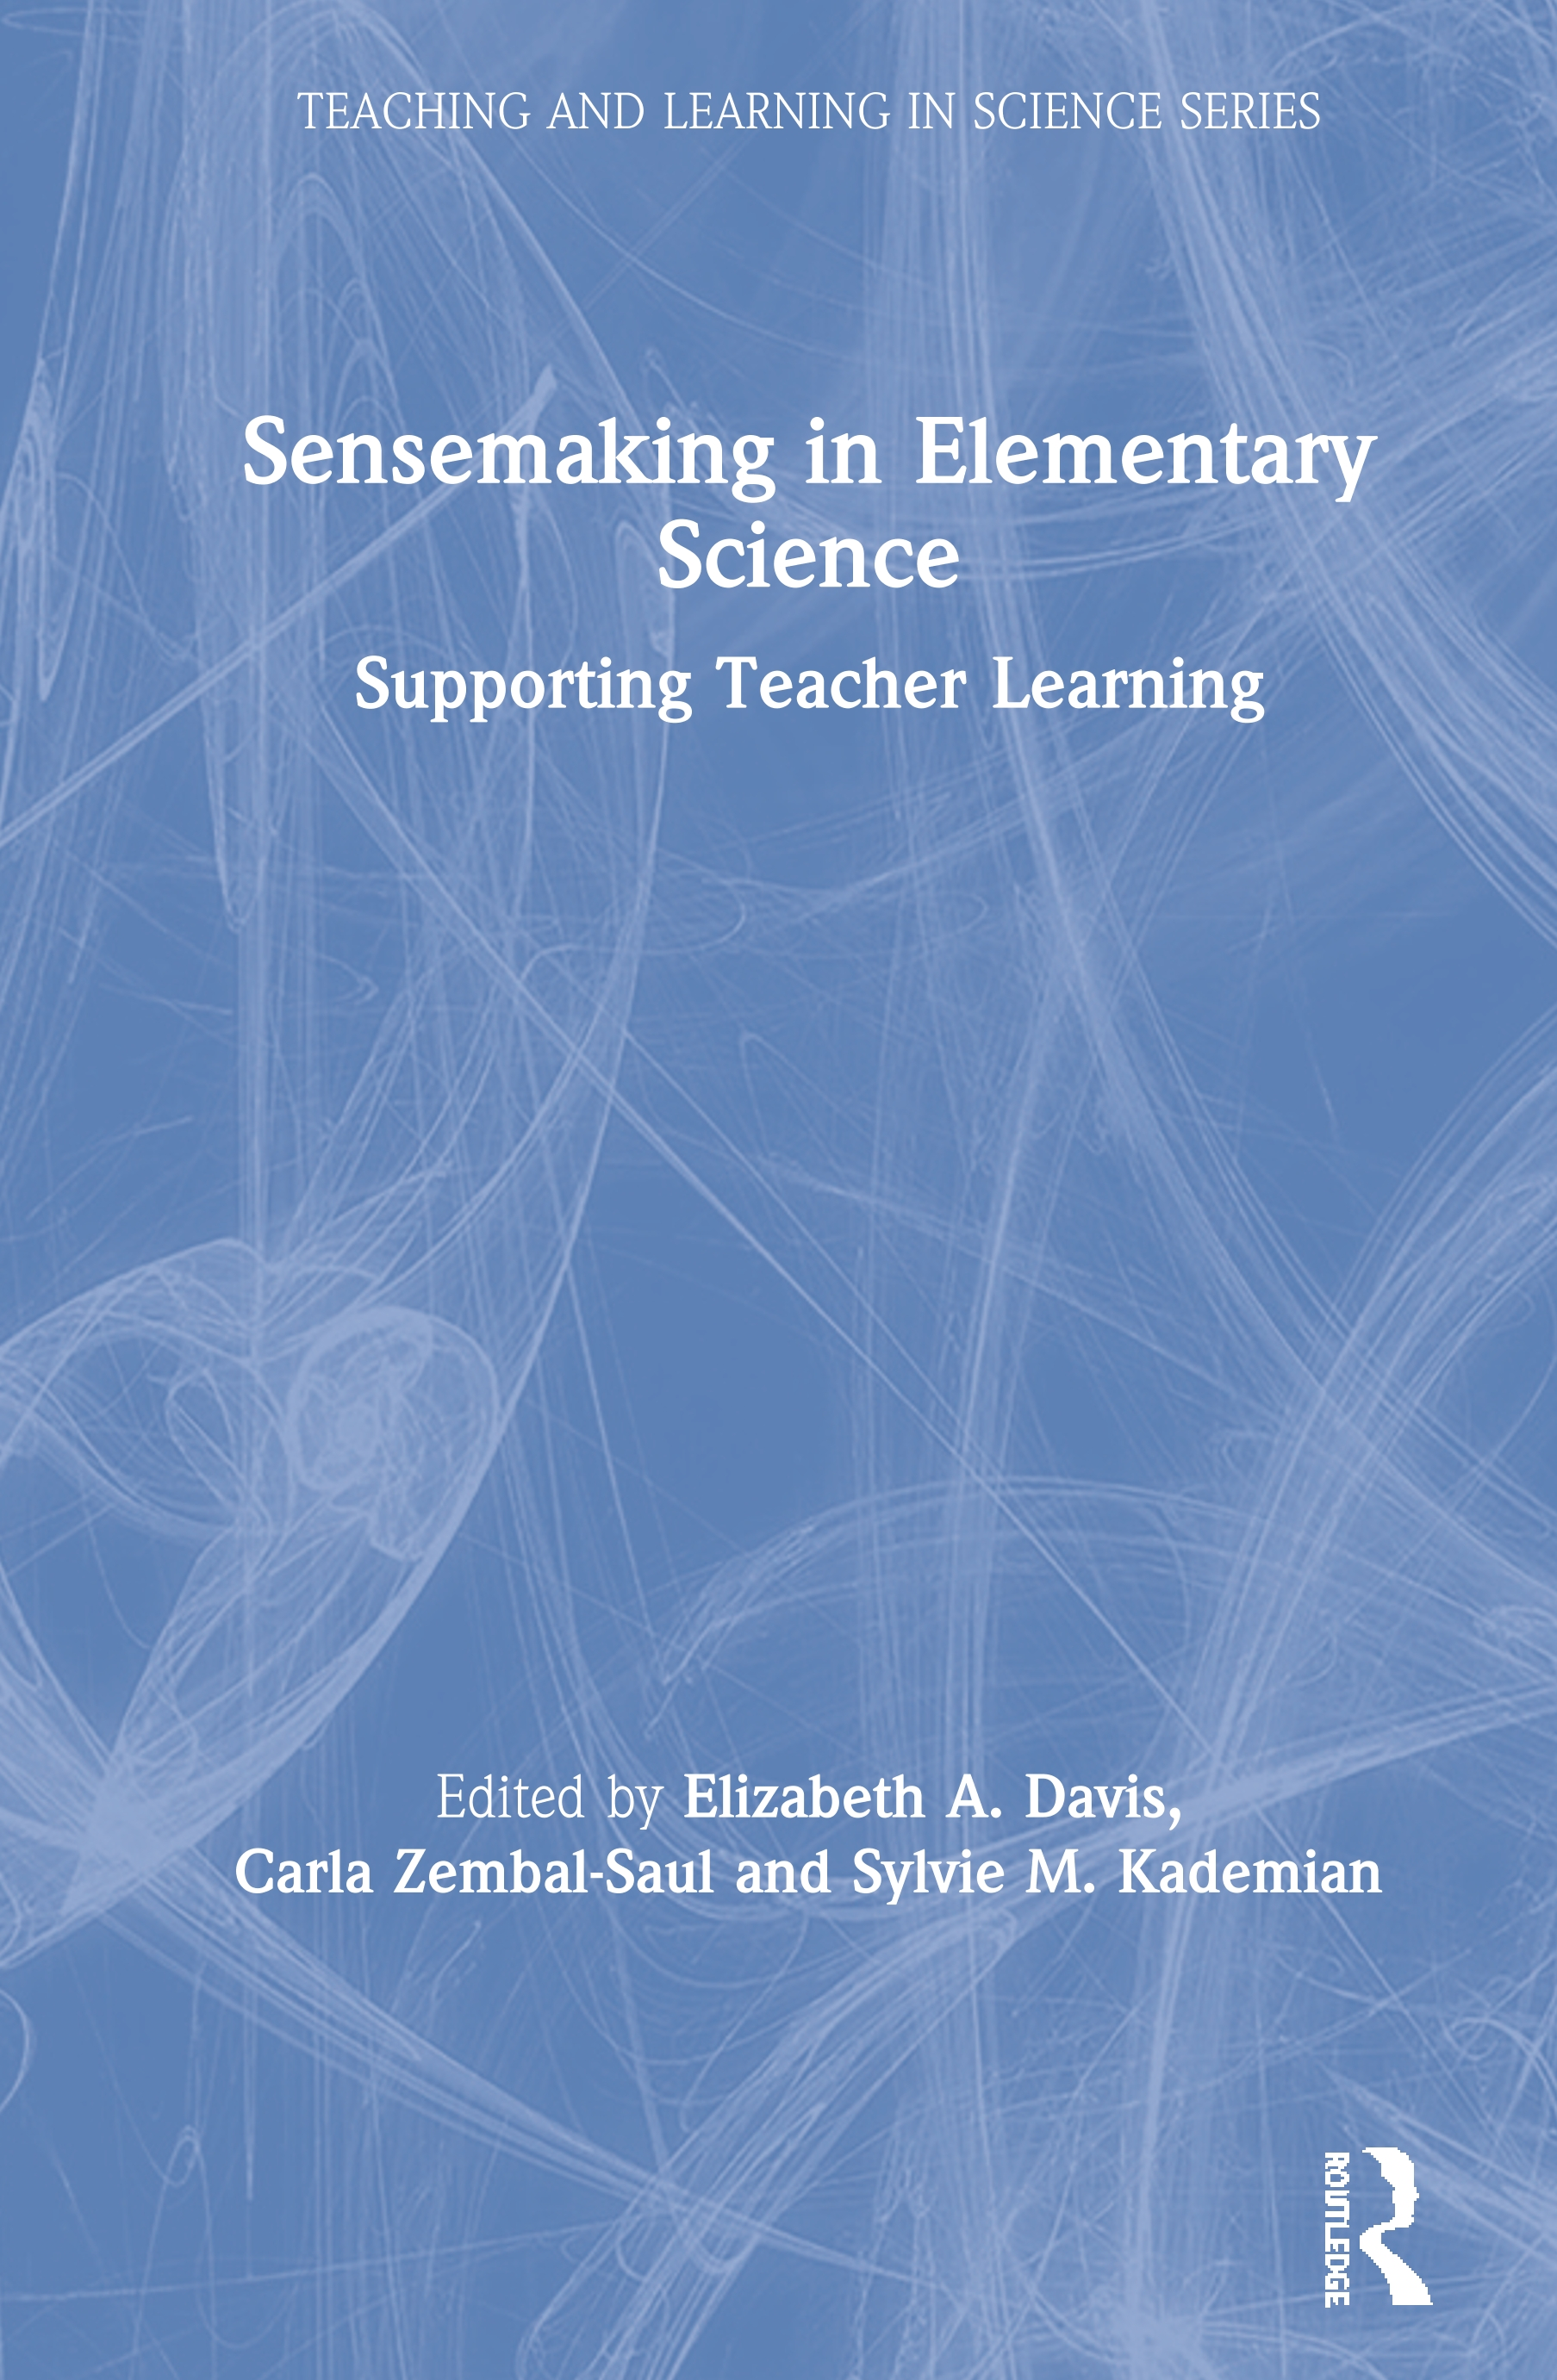 Sensemaking in Elementary Science: Supporting Teacher Learning book cover